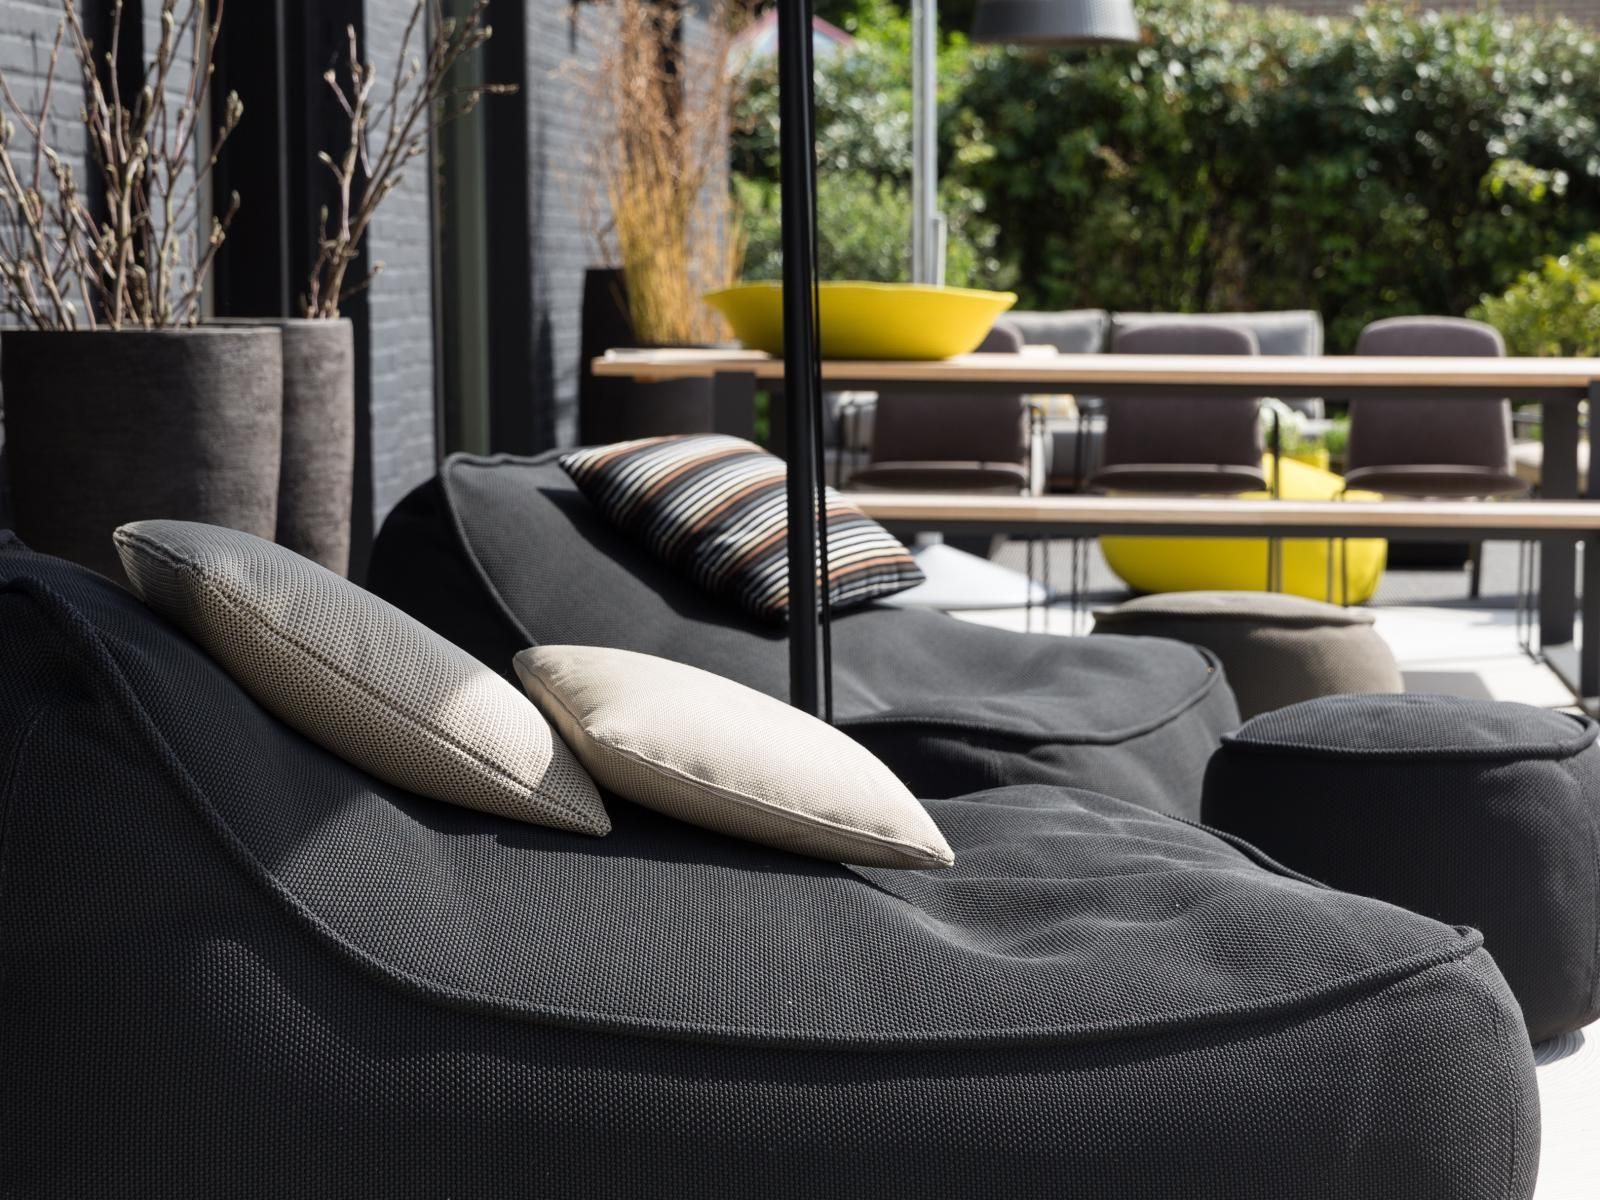 paola lenti | For the Home | Pinterest | Living rooms, Interiors ...